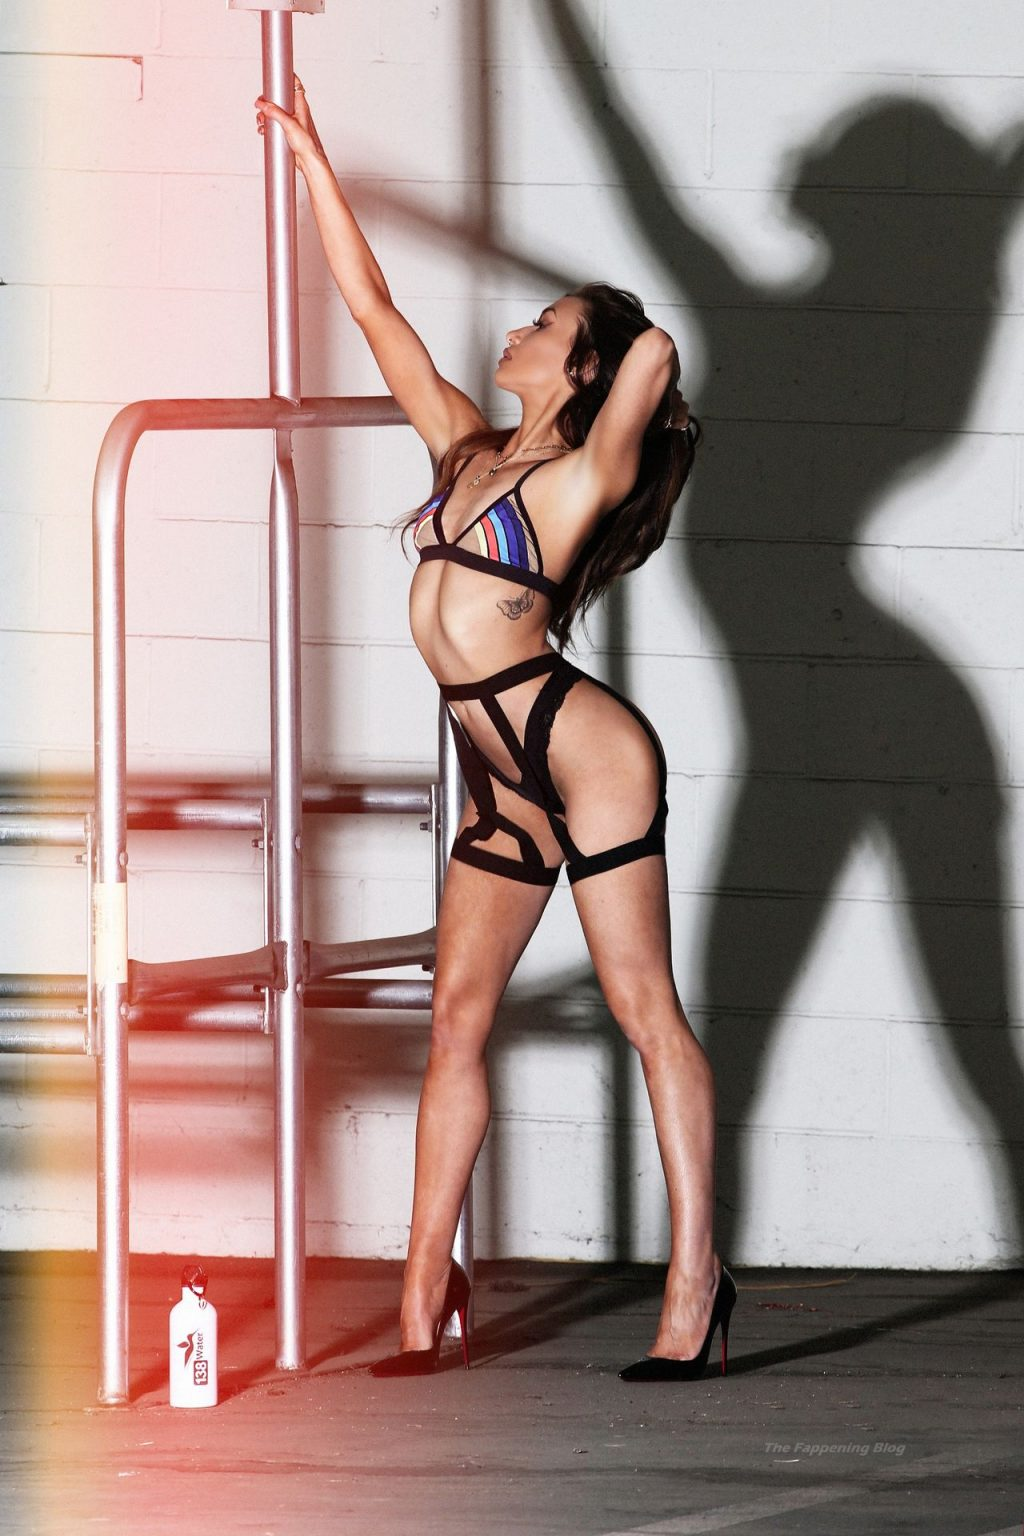 Aubrey Evans is Pictured on the Set of a Sexy 138 Water Brand Shoot (24 Photos)